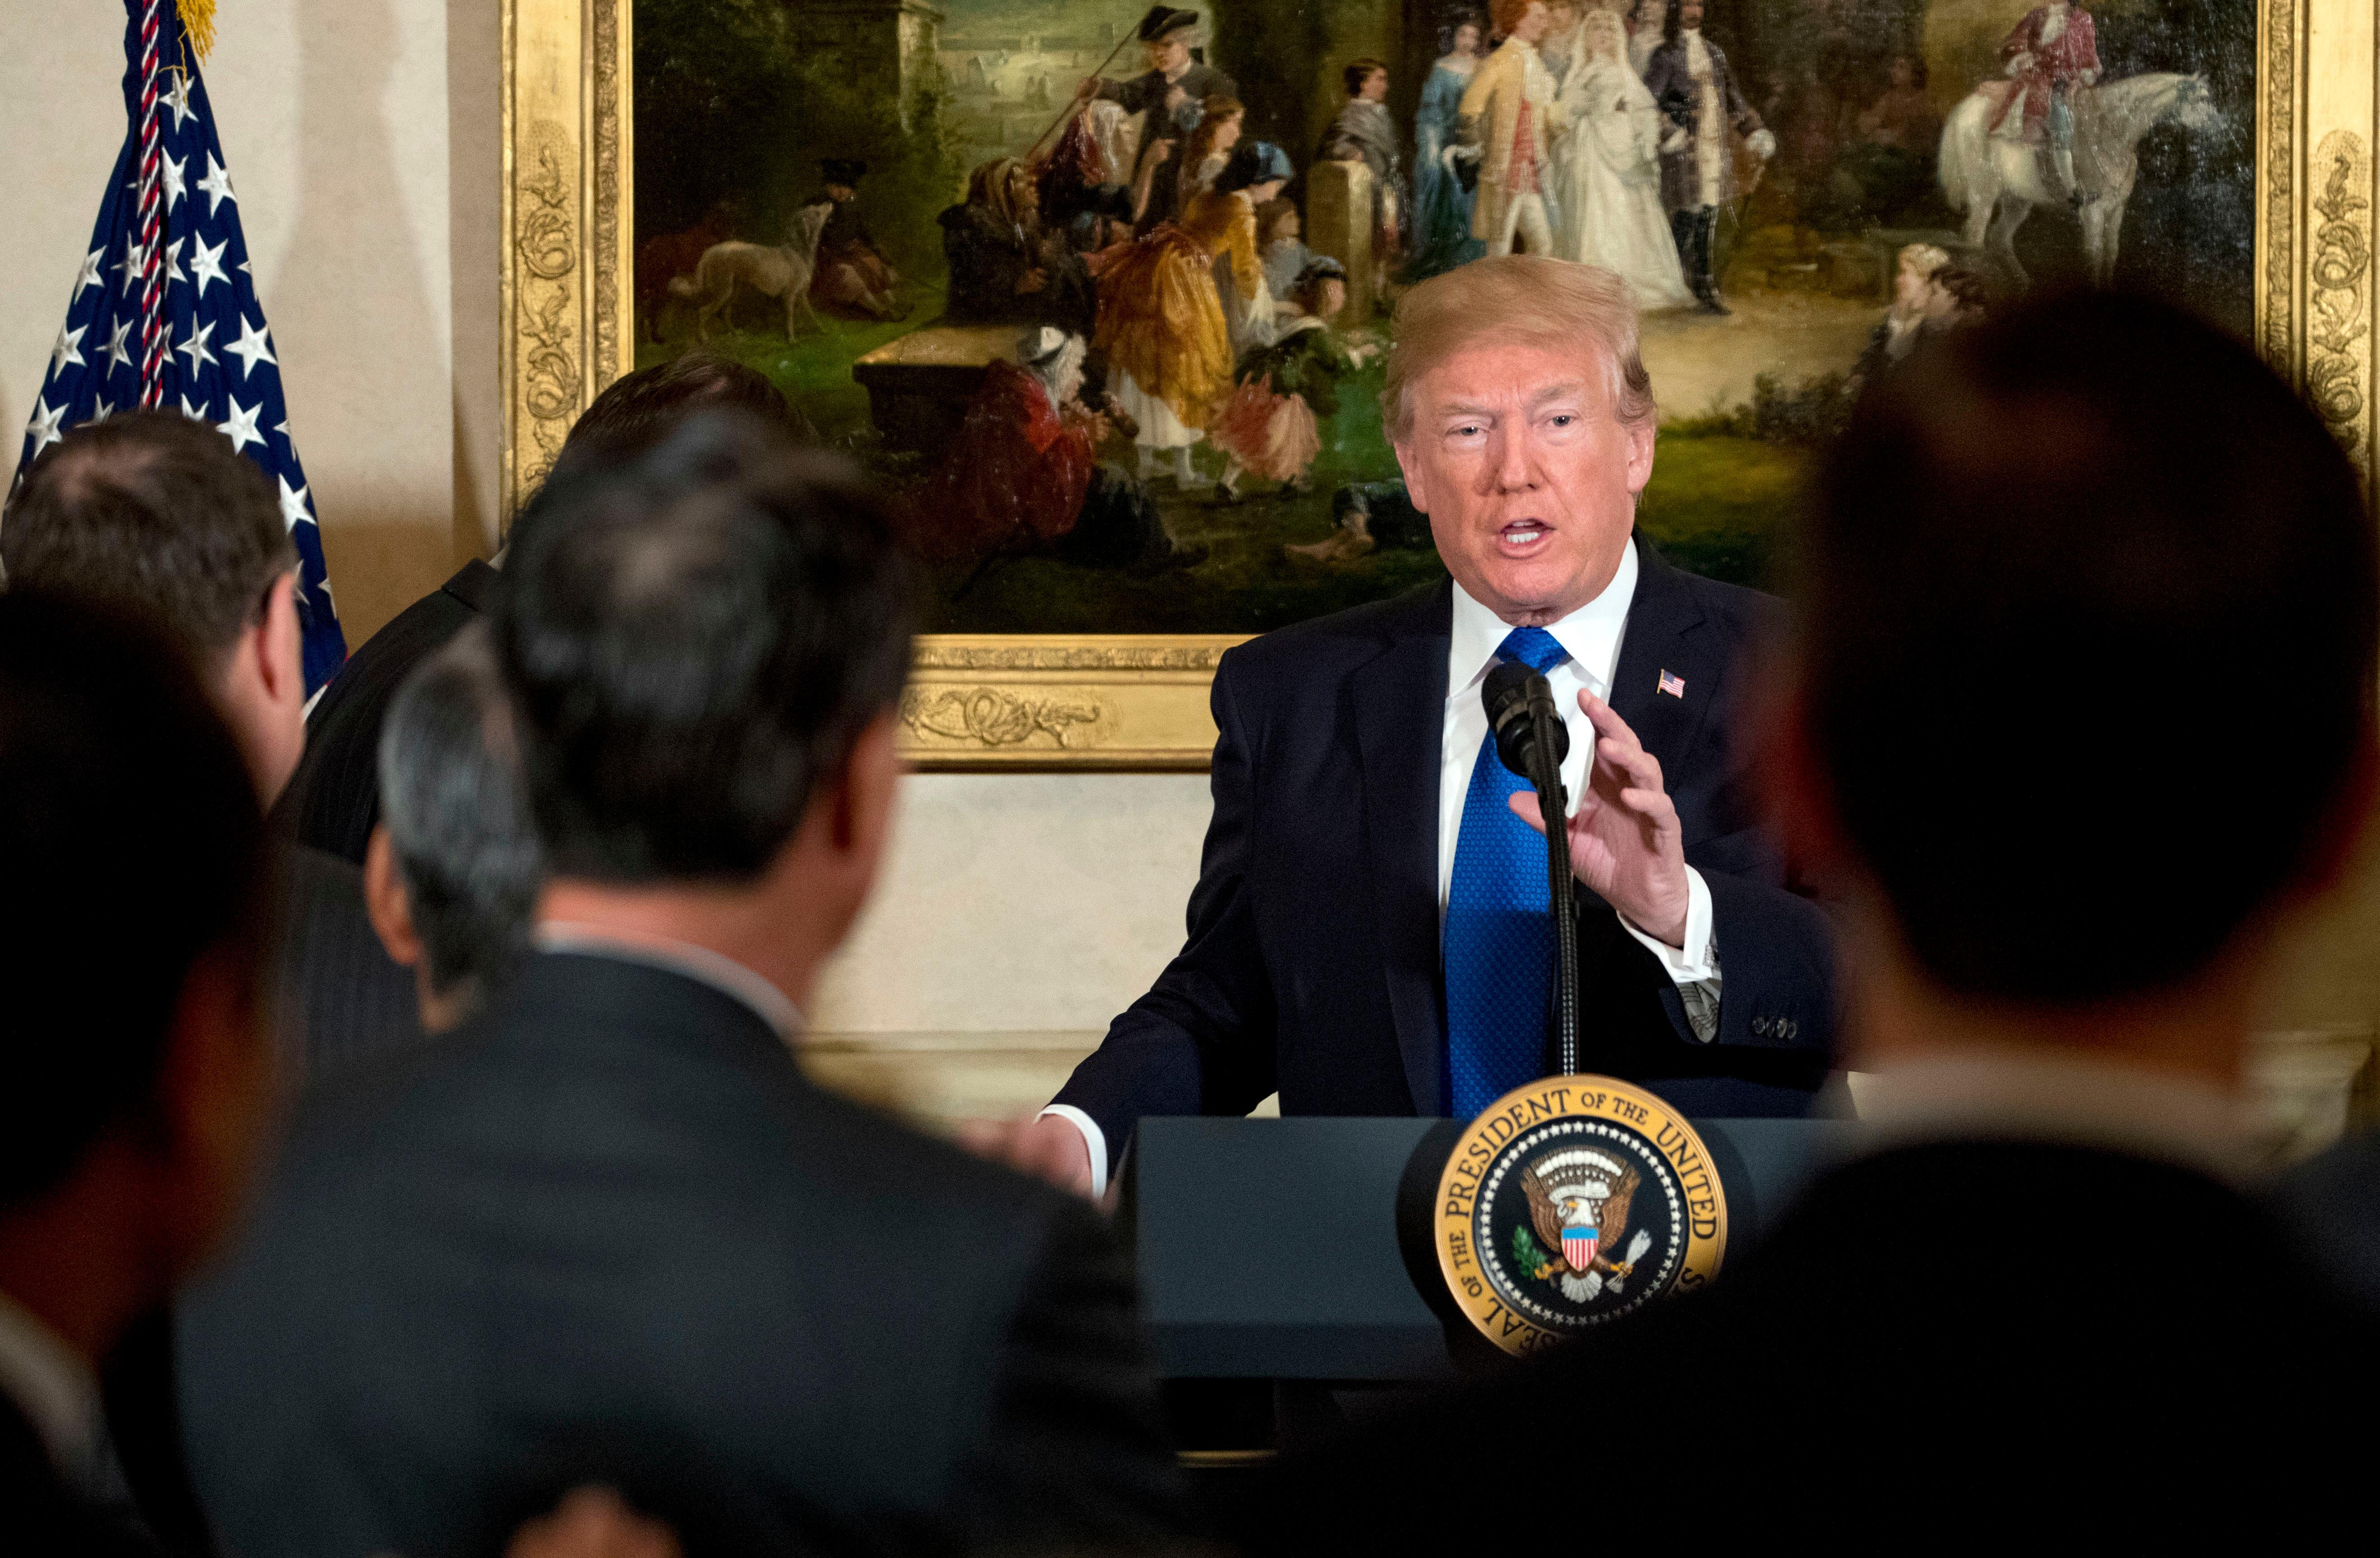 President Donald Trump speaks during a meeting with U.S. and Japanese Business Leaders at the U.S. Ambassador's residence, Monday, Nov. 6, 2017, in Tokyo. Trump is on a five country trip through Asia traveling to Japan, South Korea, China, Vietnam and the Philippines. (AP Photo/Andrew Harnik)